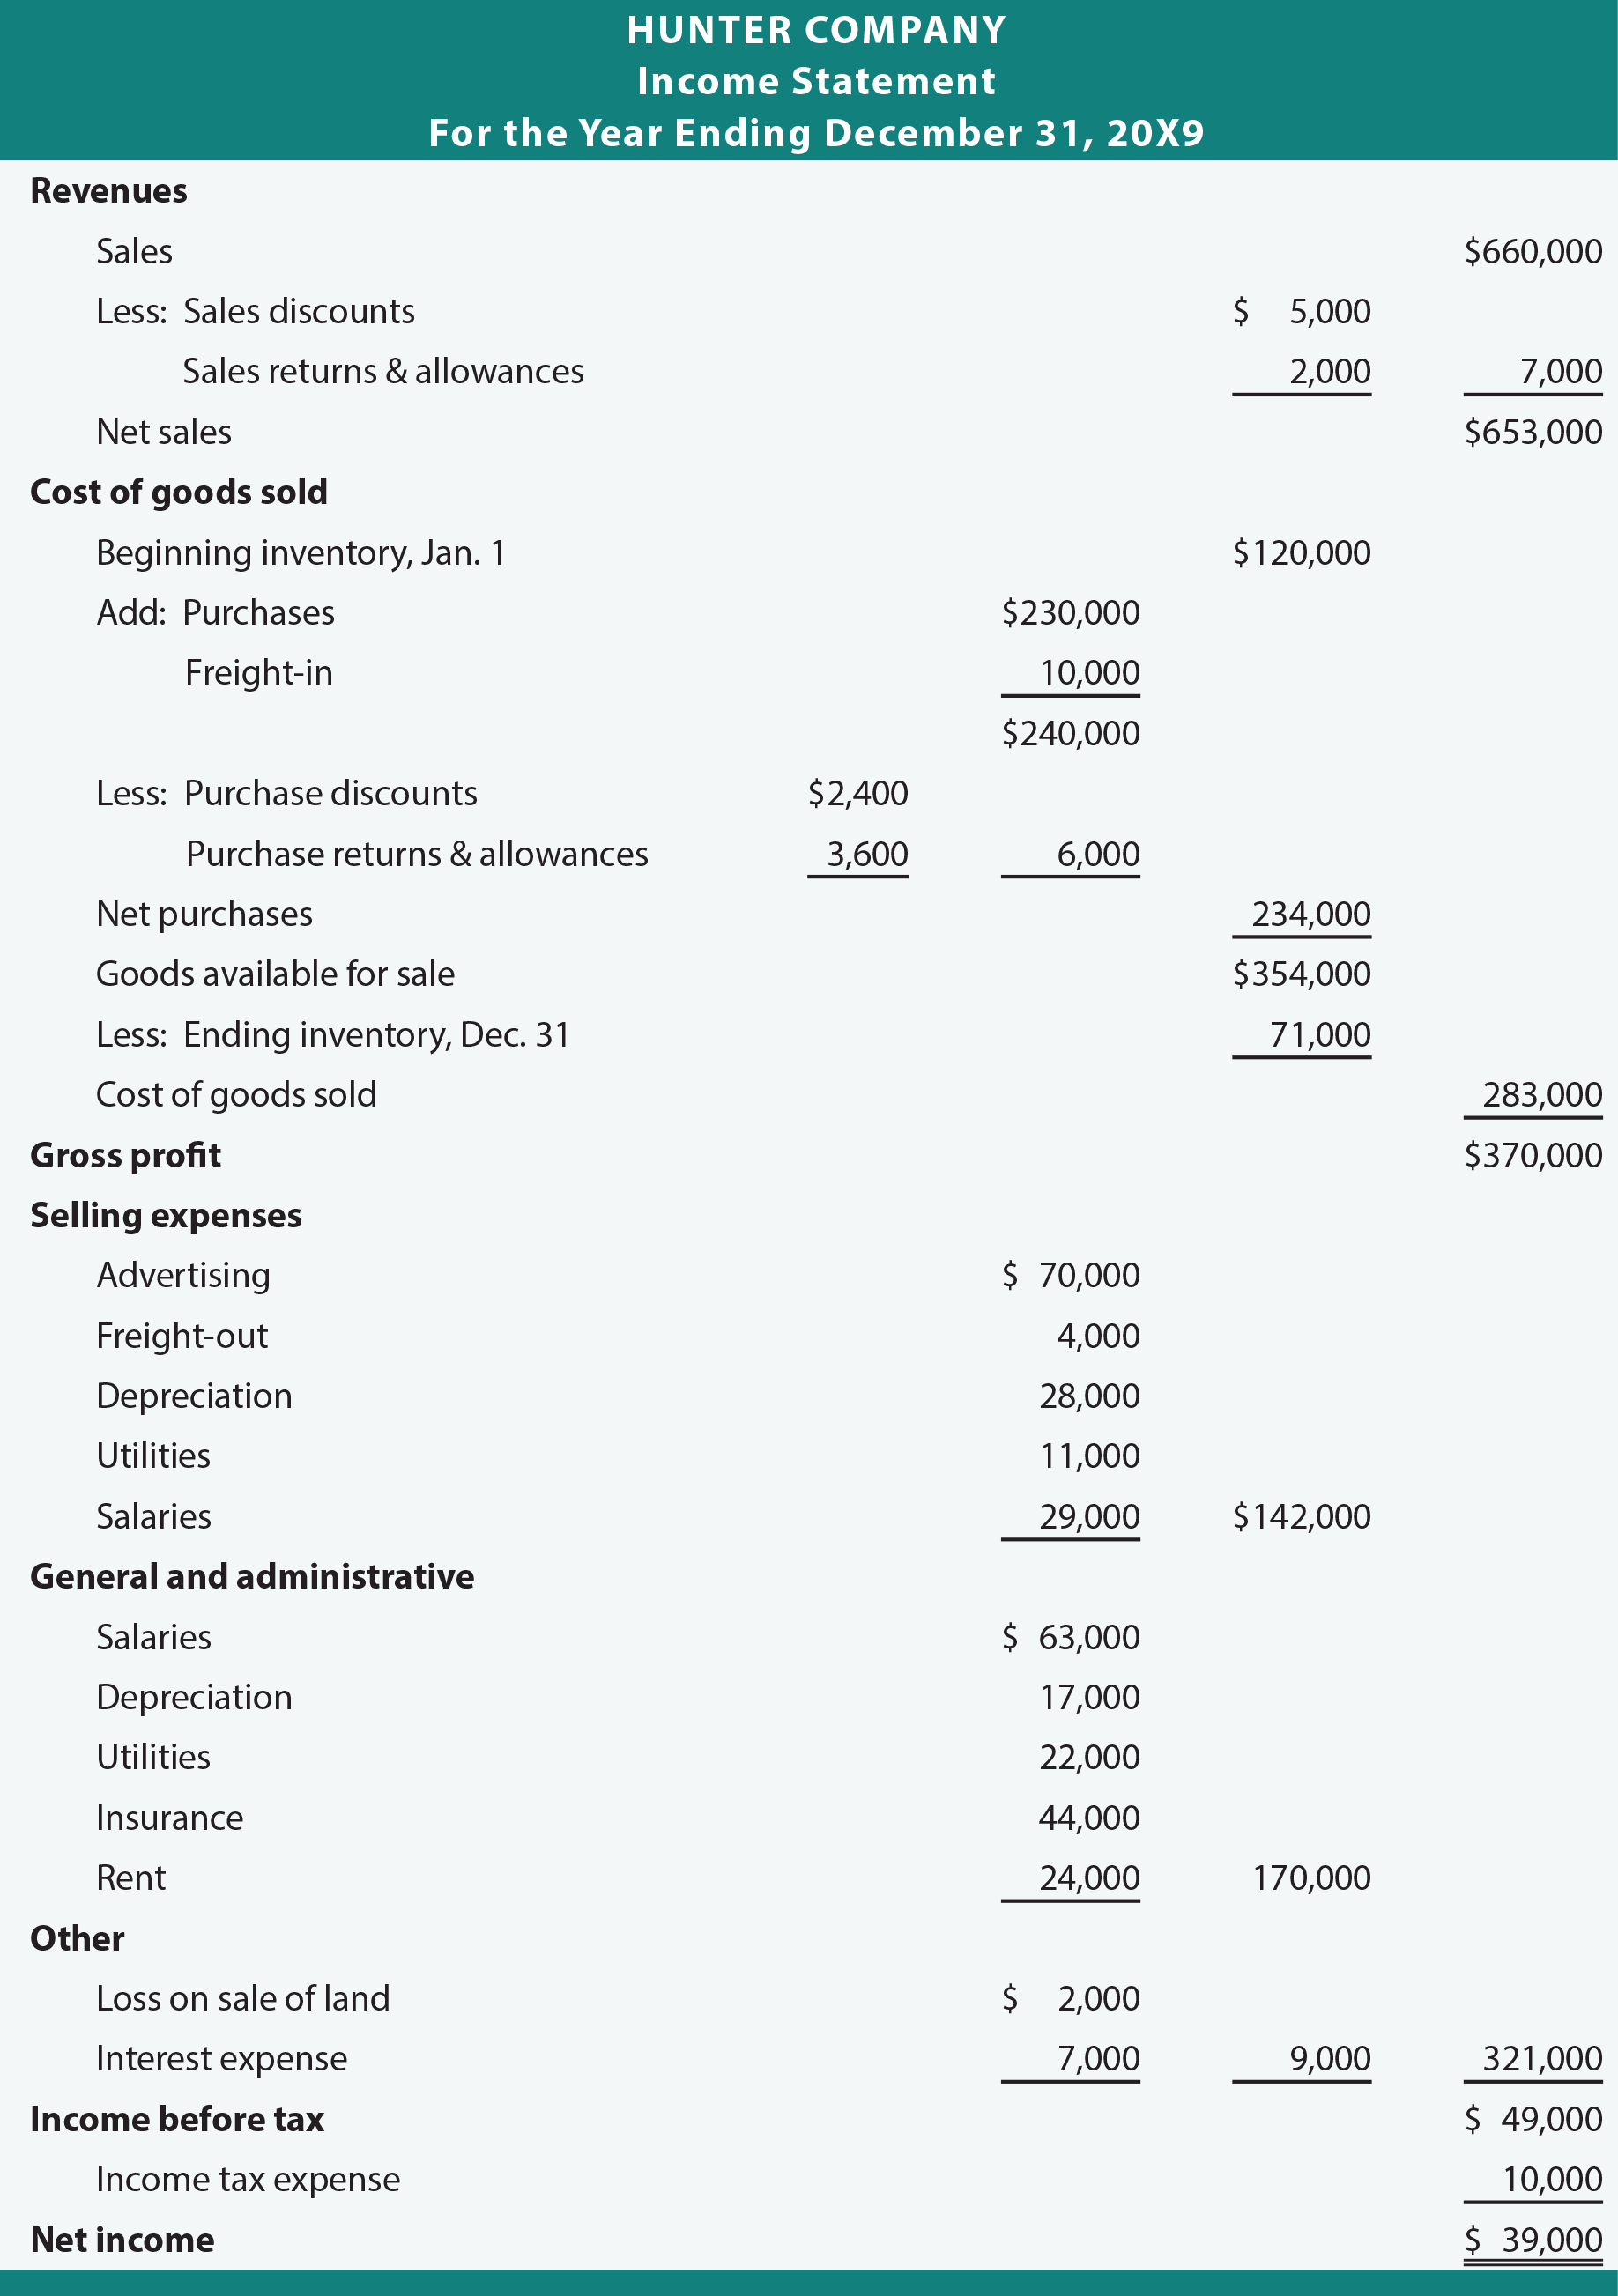 Hunter Company Multiple-Step Income Statement